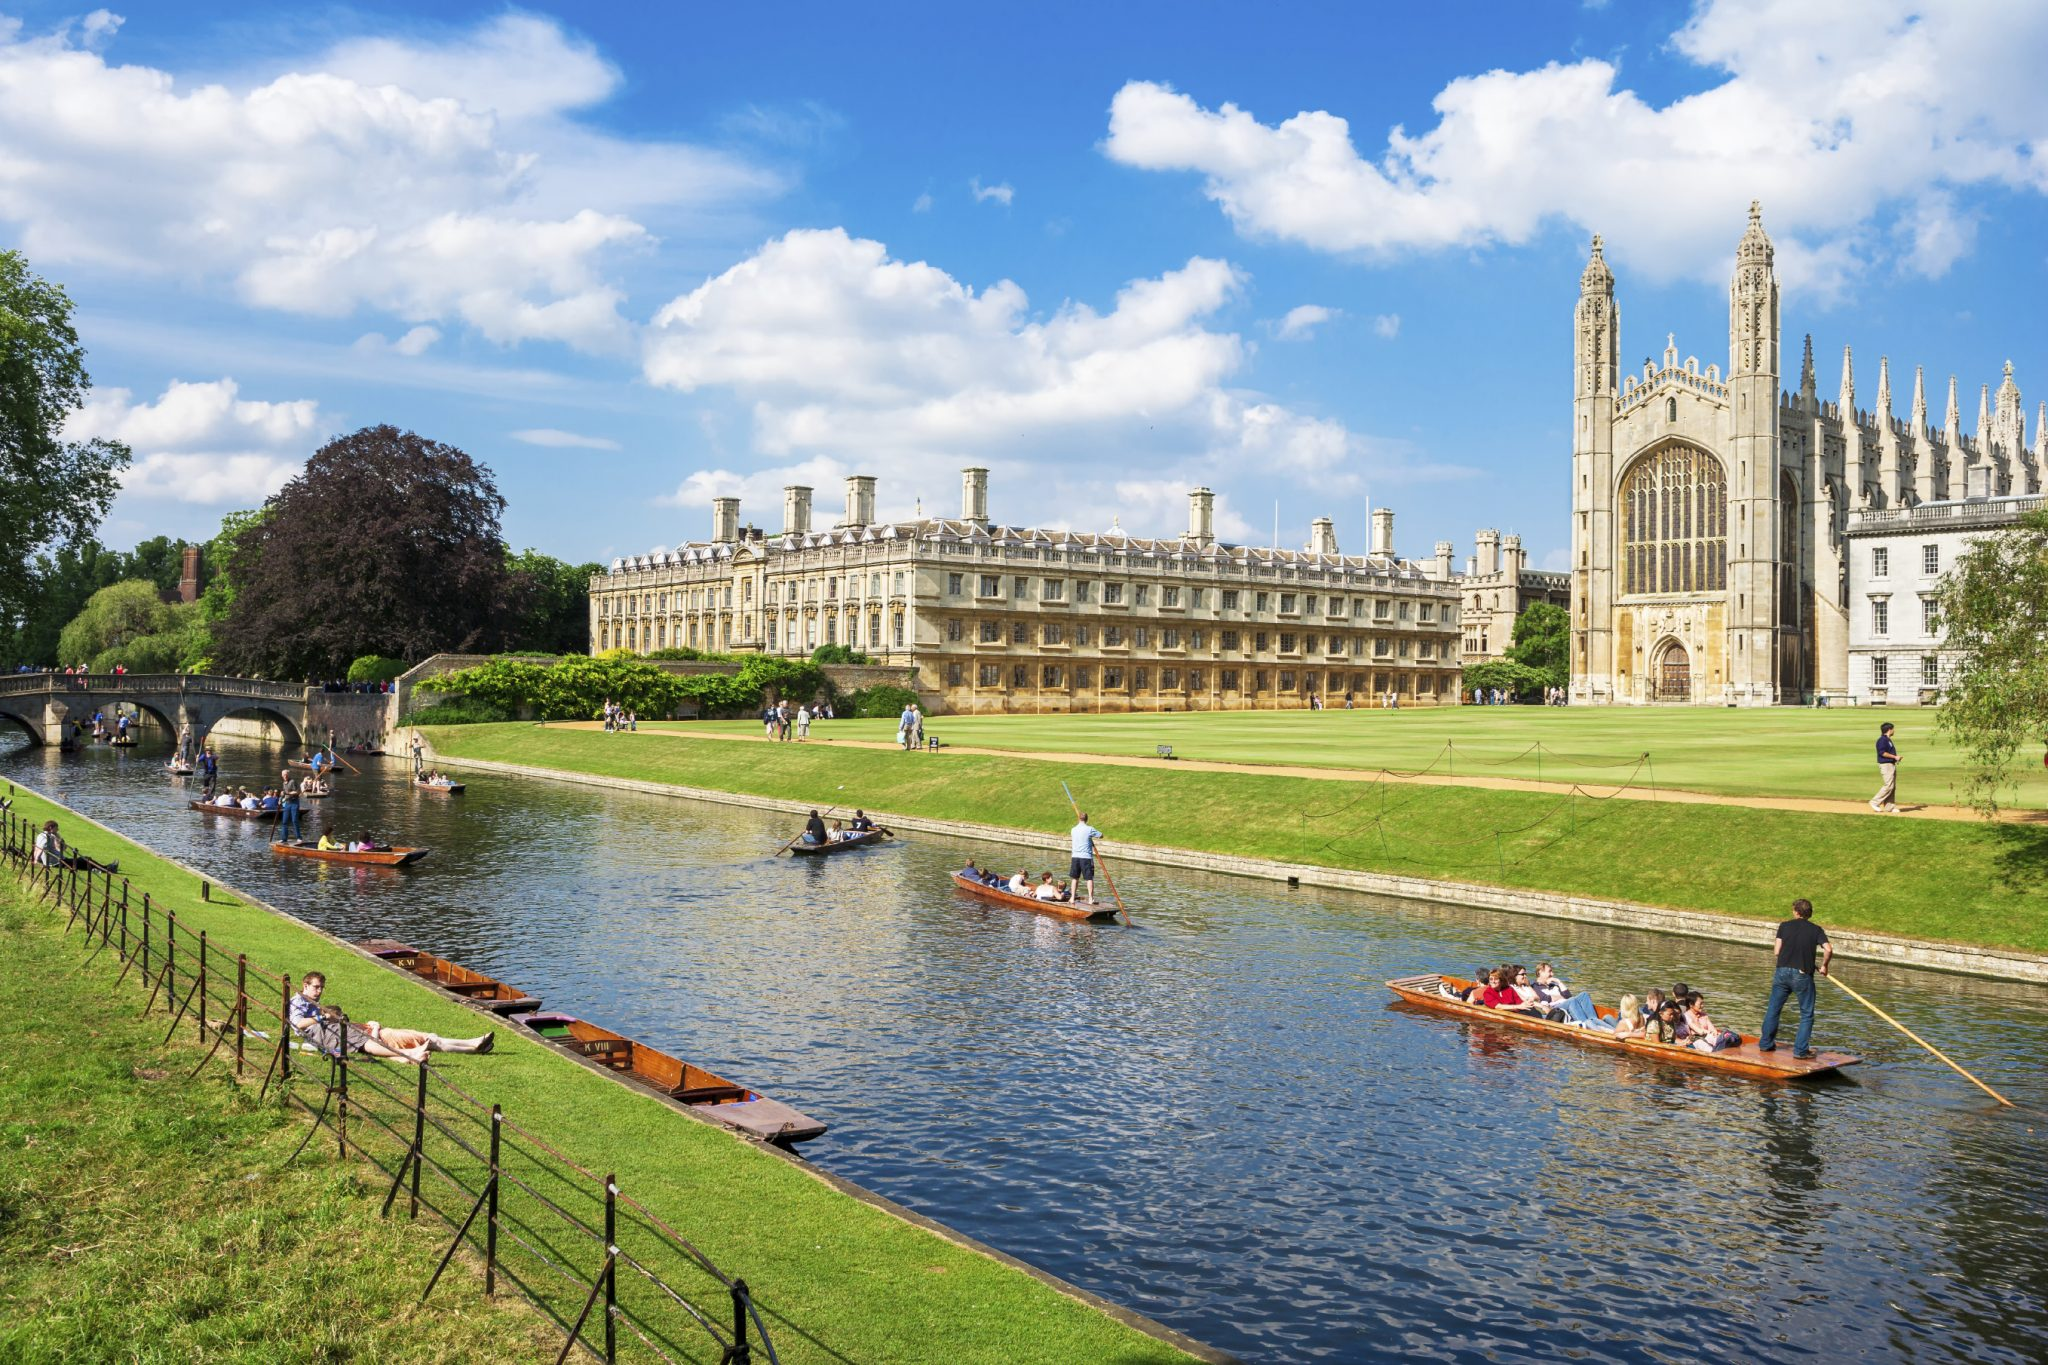 10-Best-Cities-To-Study-Abroad-Cambridge